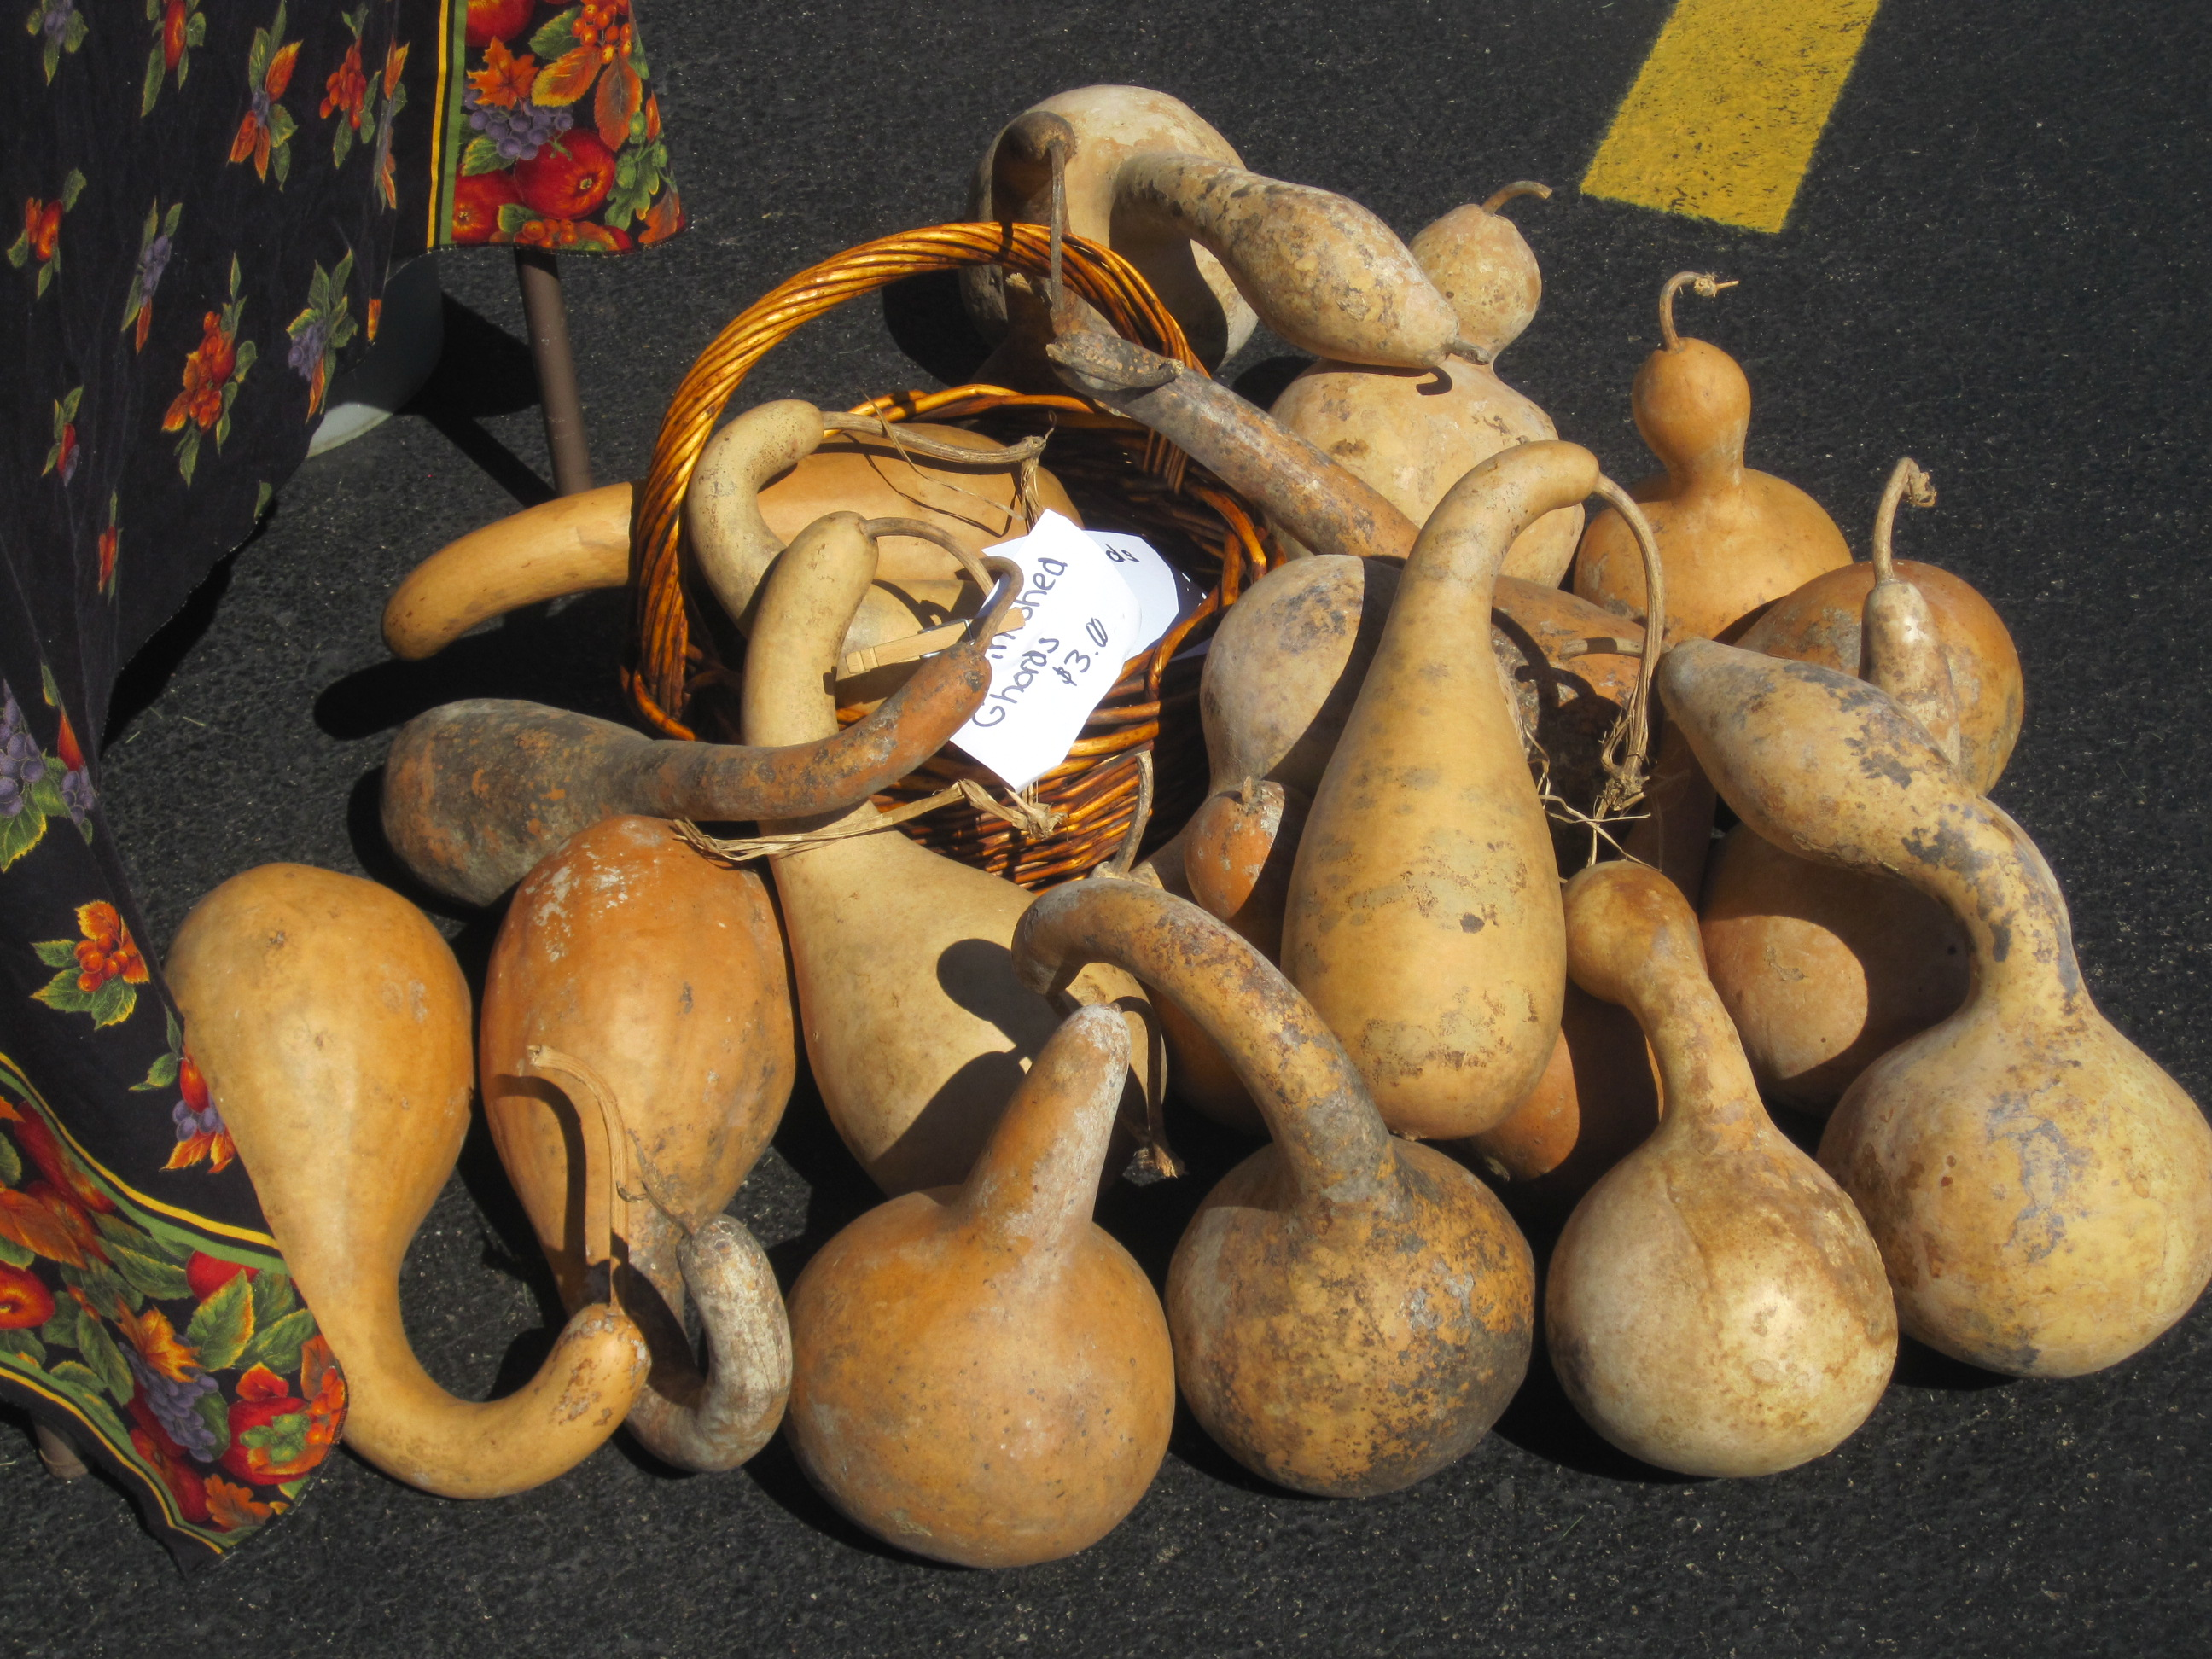 Farmers' Market - gourds